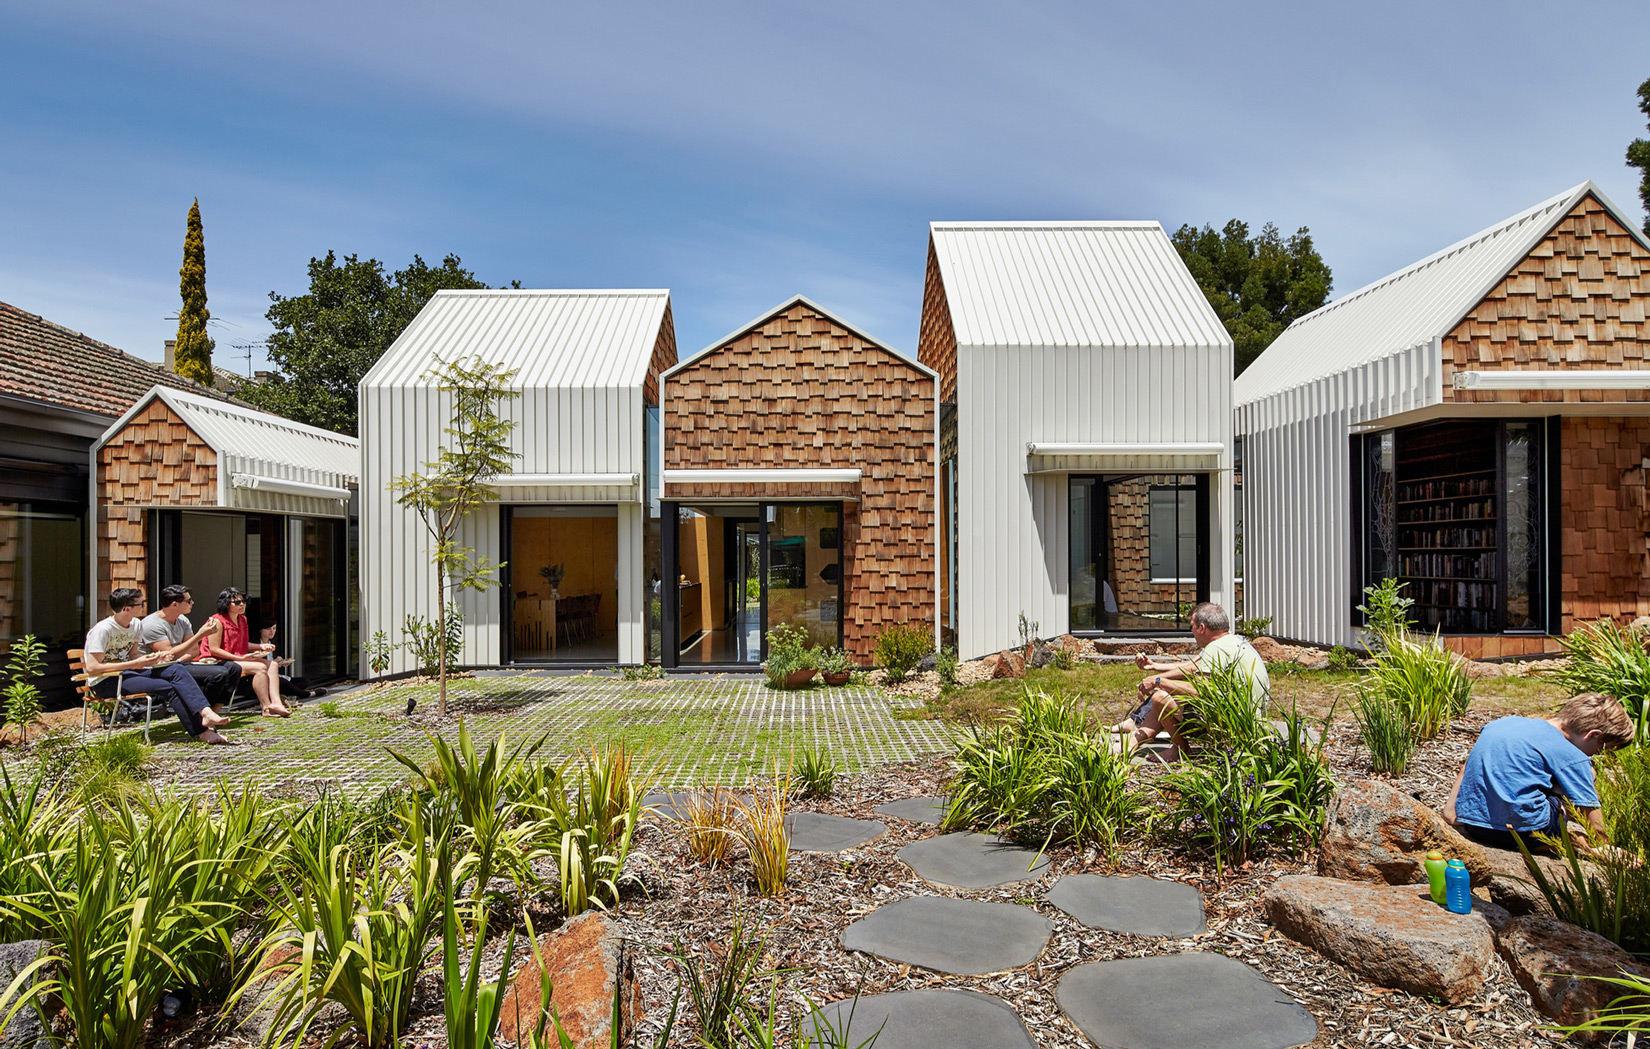 Tower House / Andrew Maynard Architects (23)